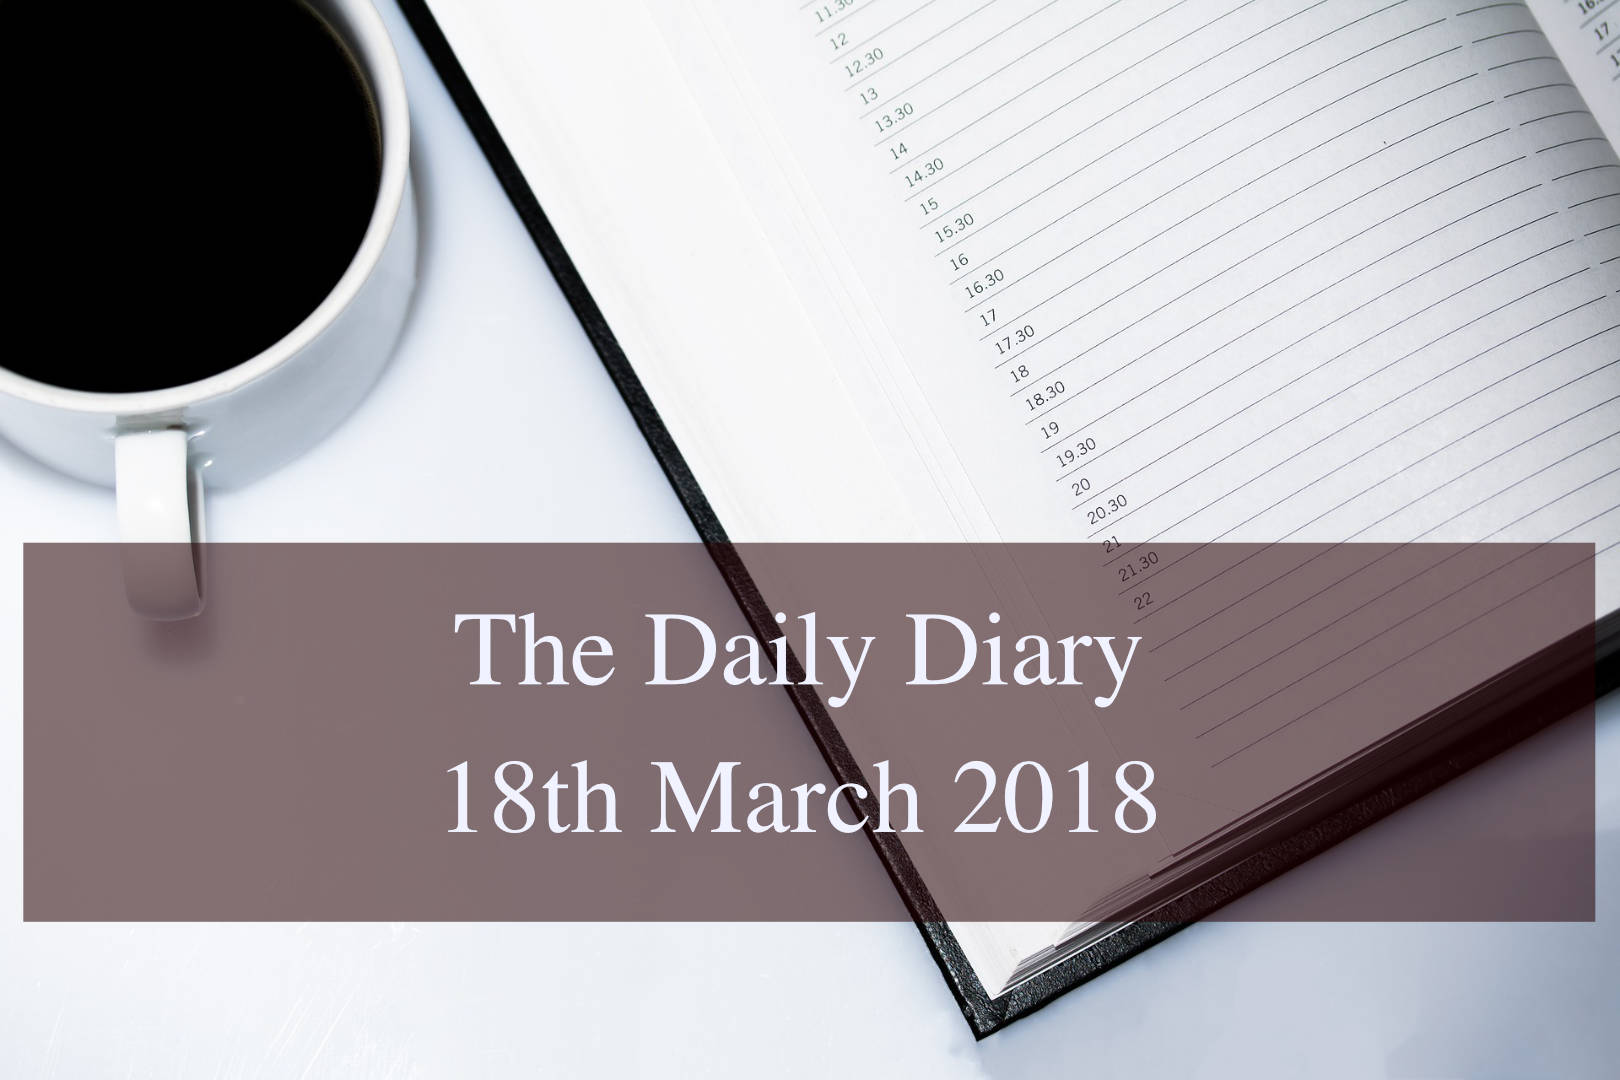 Daily Diary – 18th March 2018